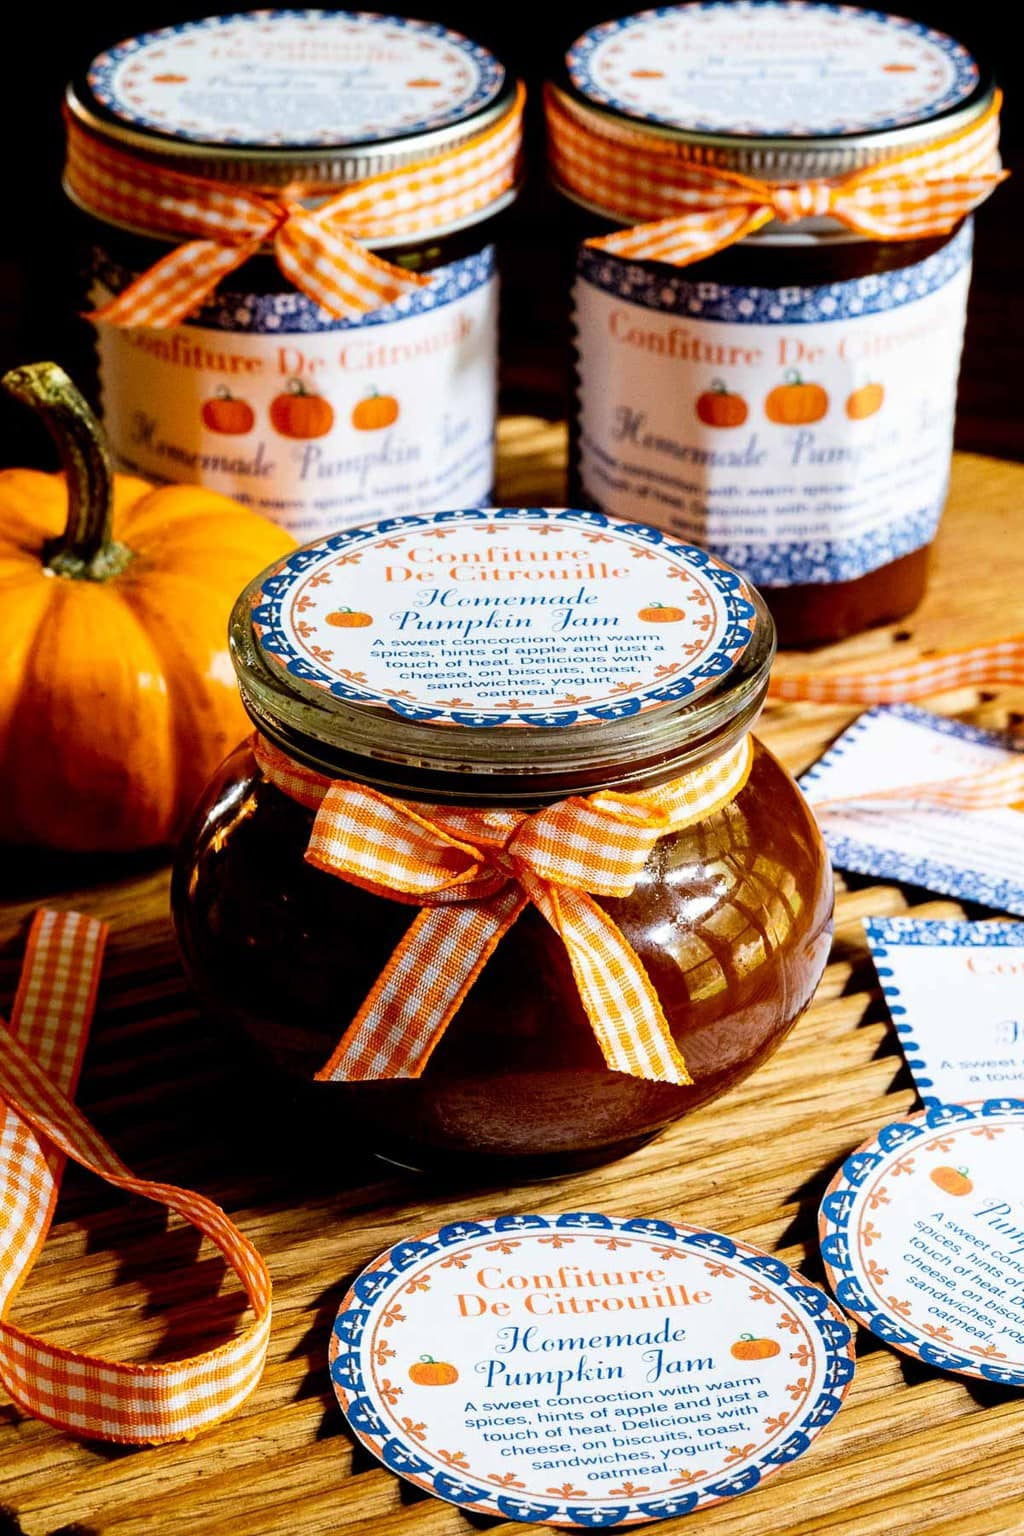 Horizontal photo of a group of glass jars of Pumpkin Jam (Confiture De Citrouille) on a wood tray with custom gift labels for the jam.